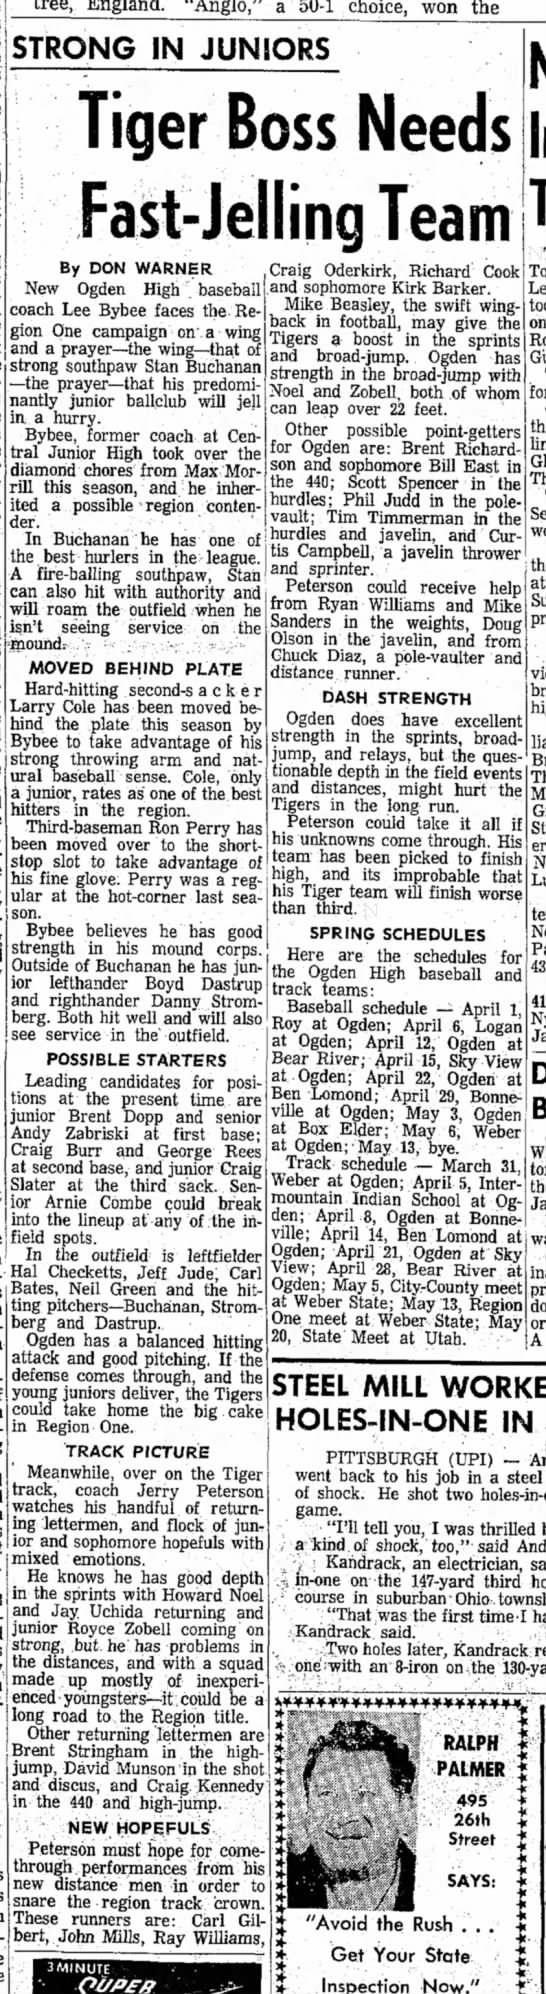 "1966 OHS Baseball preview - Aintree, England. ""Anglo,"" a 50-1 choice, won..."